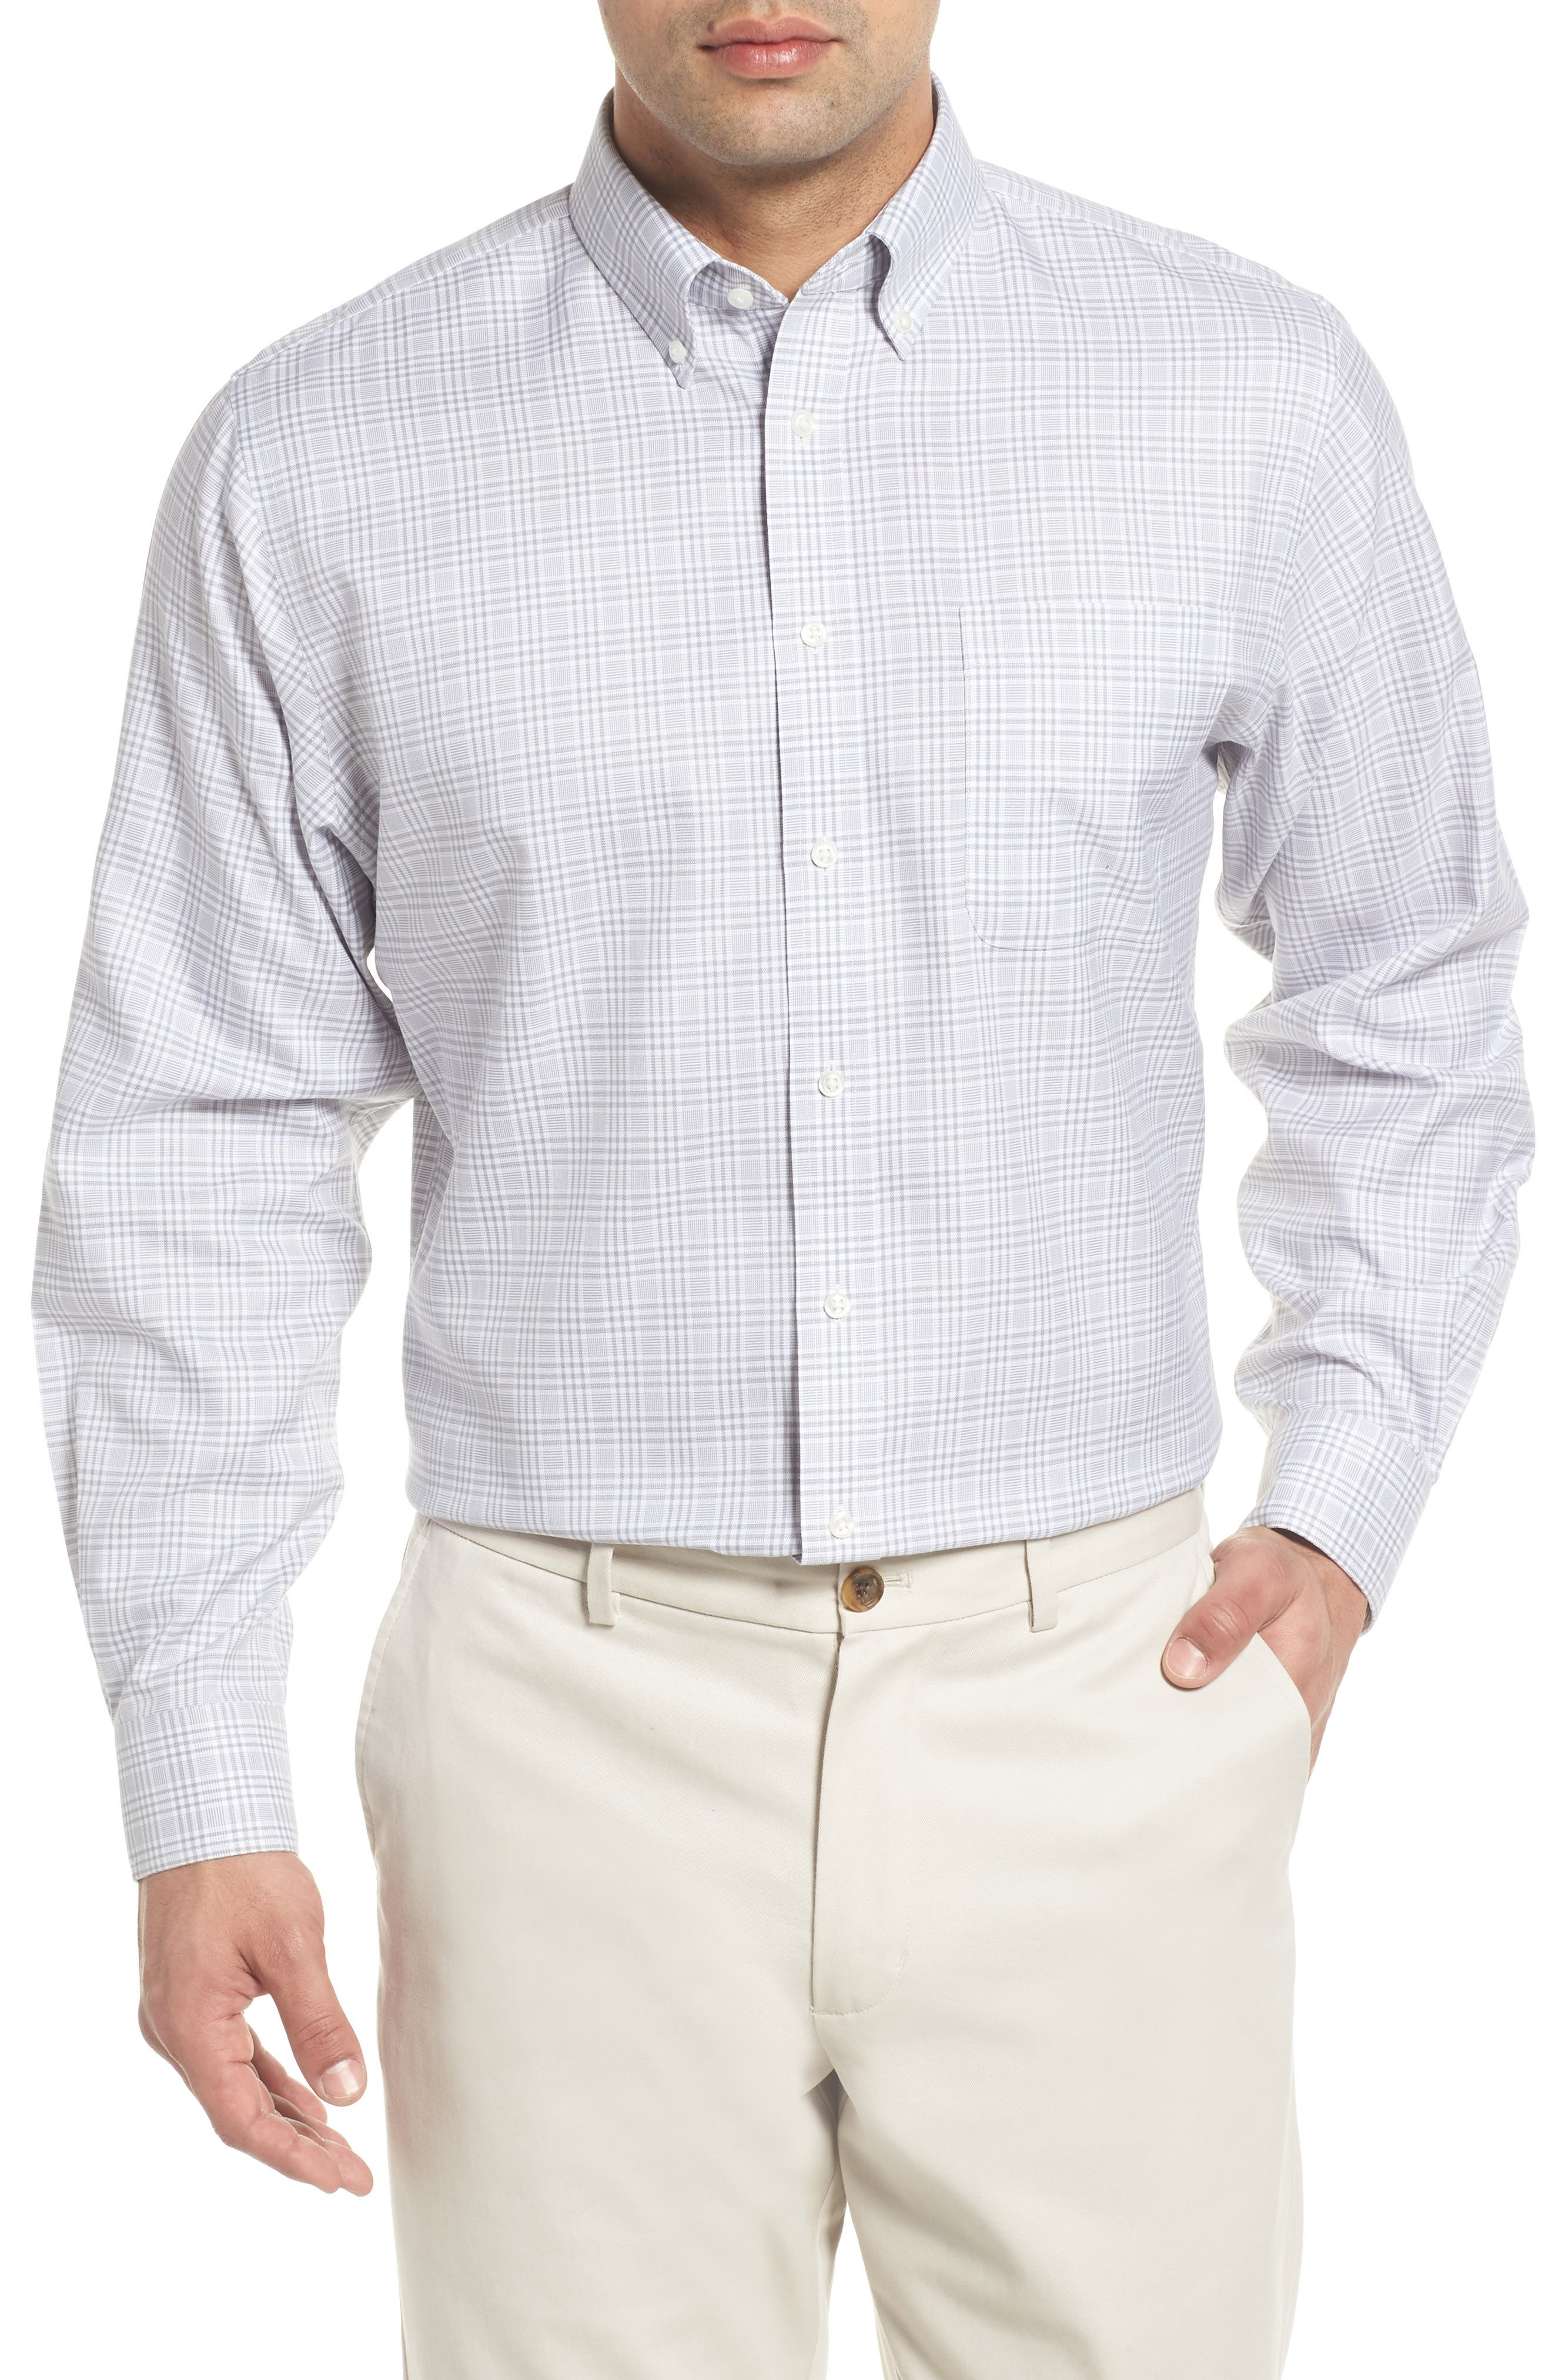 Smartcare<sup>™</sup> Traditional Fit Plaid Dress Shirt,                             Main thumbnail 1, color,                             Grey Sleet